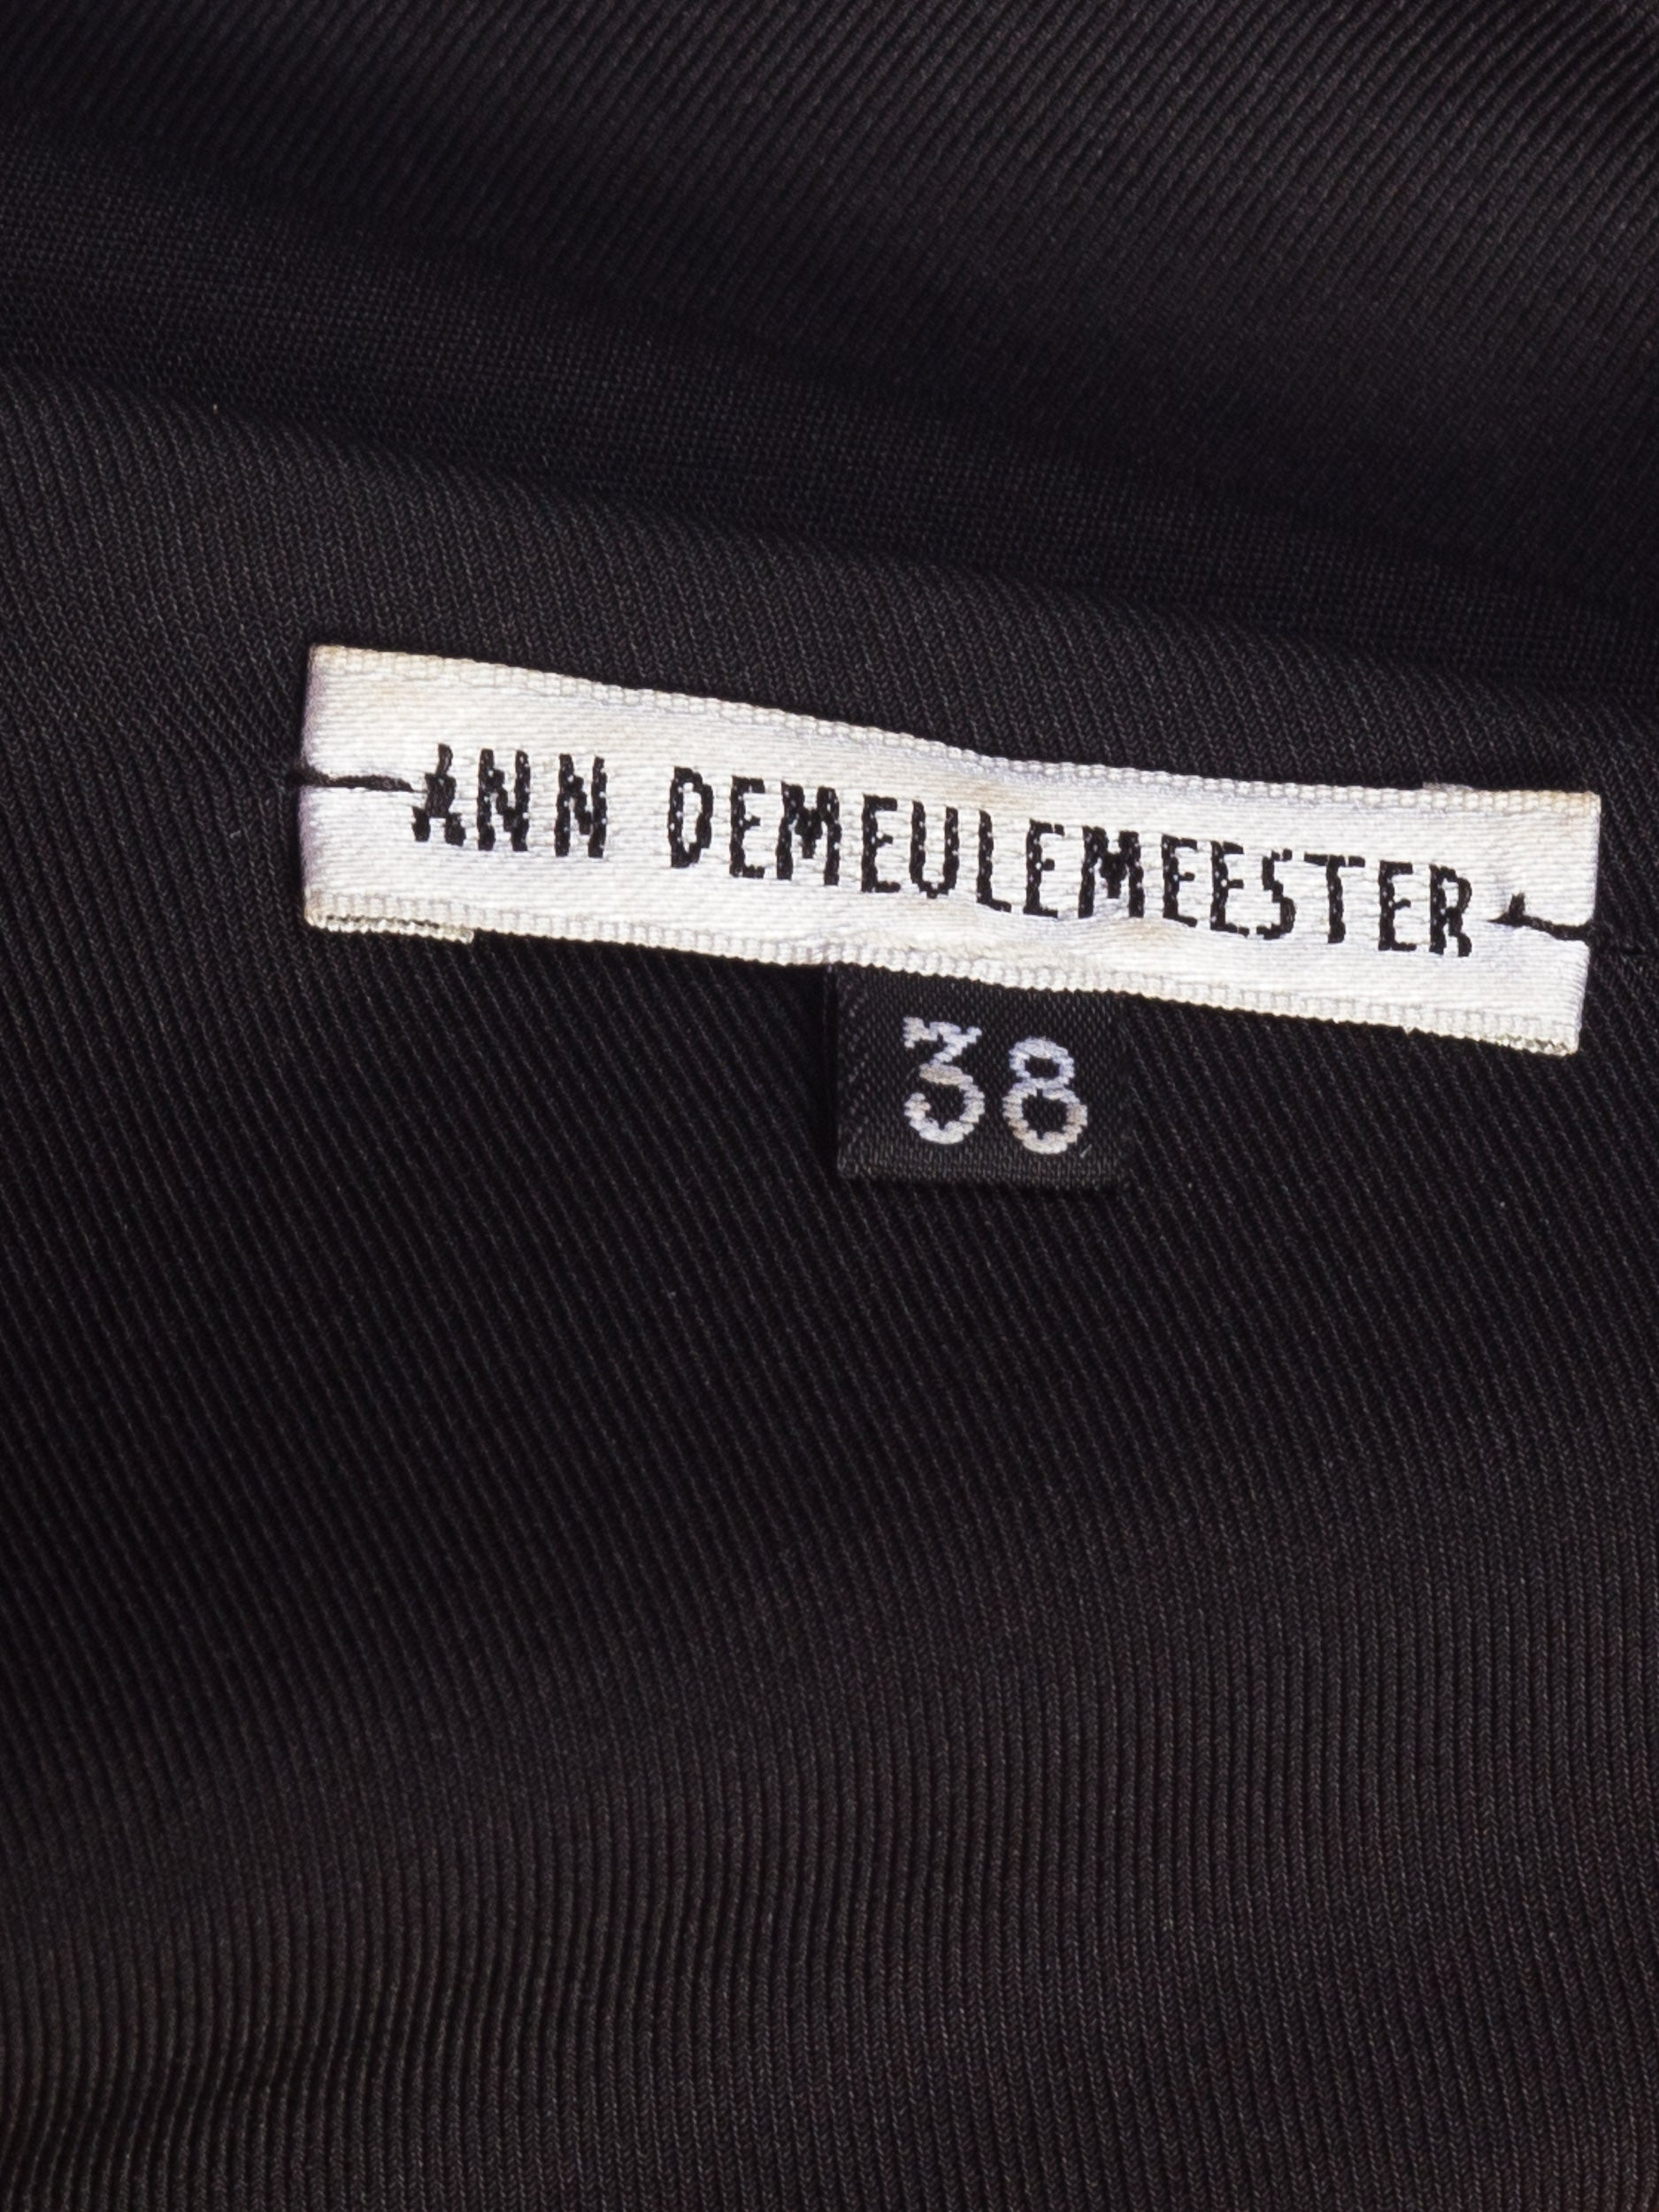 Ann Demeulemeester Silk Scarf |New York City | 24hrs- Free Return policy | US Free Shipping | Pre-owned Clothing | Sustainable fashion | Women Vintage Clothing | Vintage Clothing Store